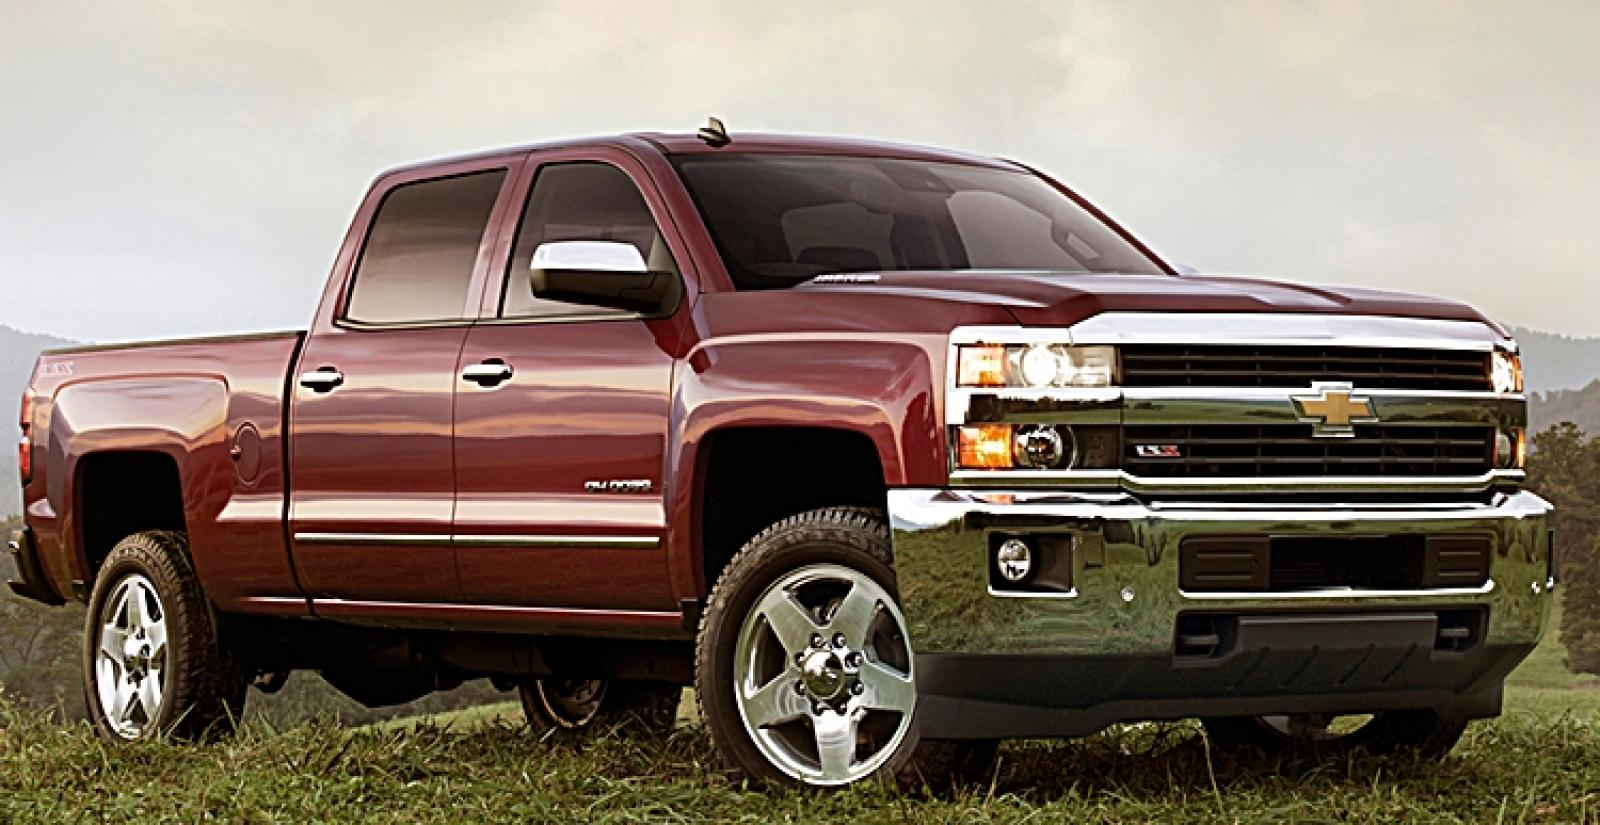 2015 chevrolet silverado 2500hd information and photos zombiedrive. Black Bedroom Furniture Sets. Home Design Ideas